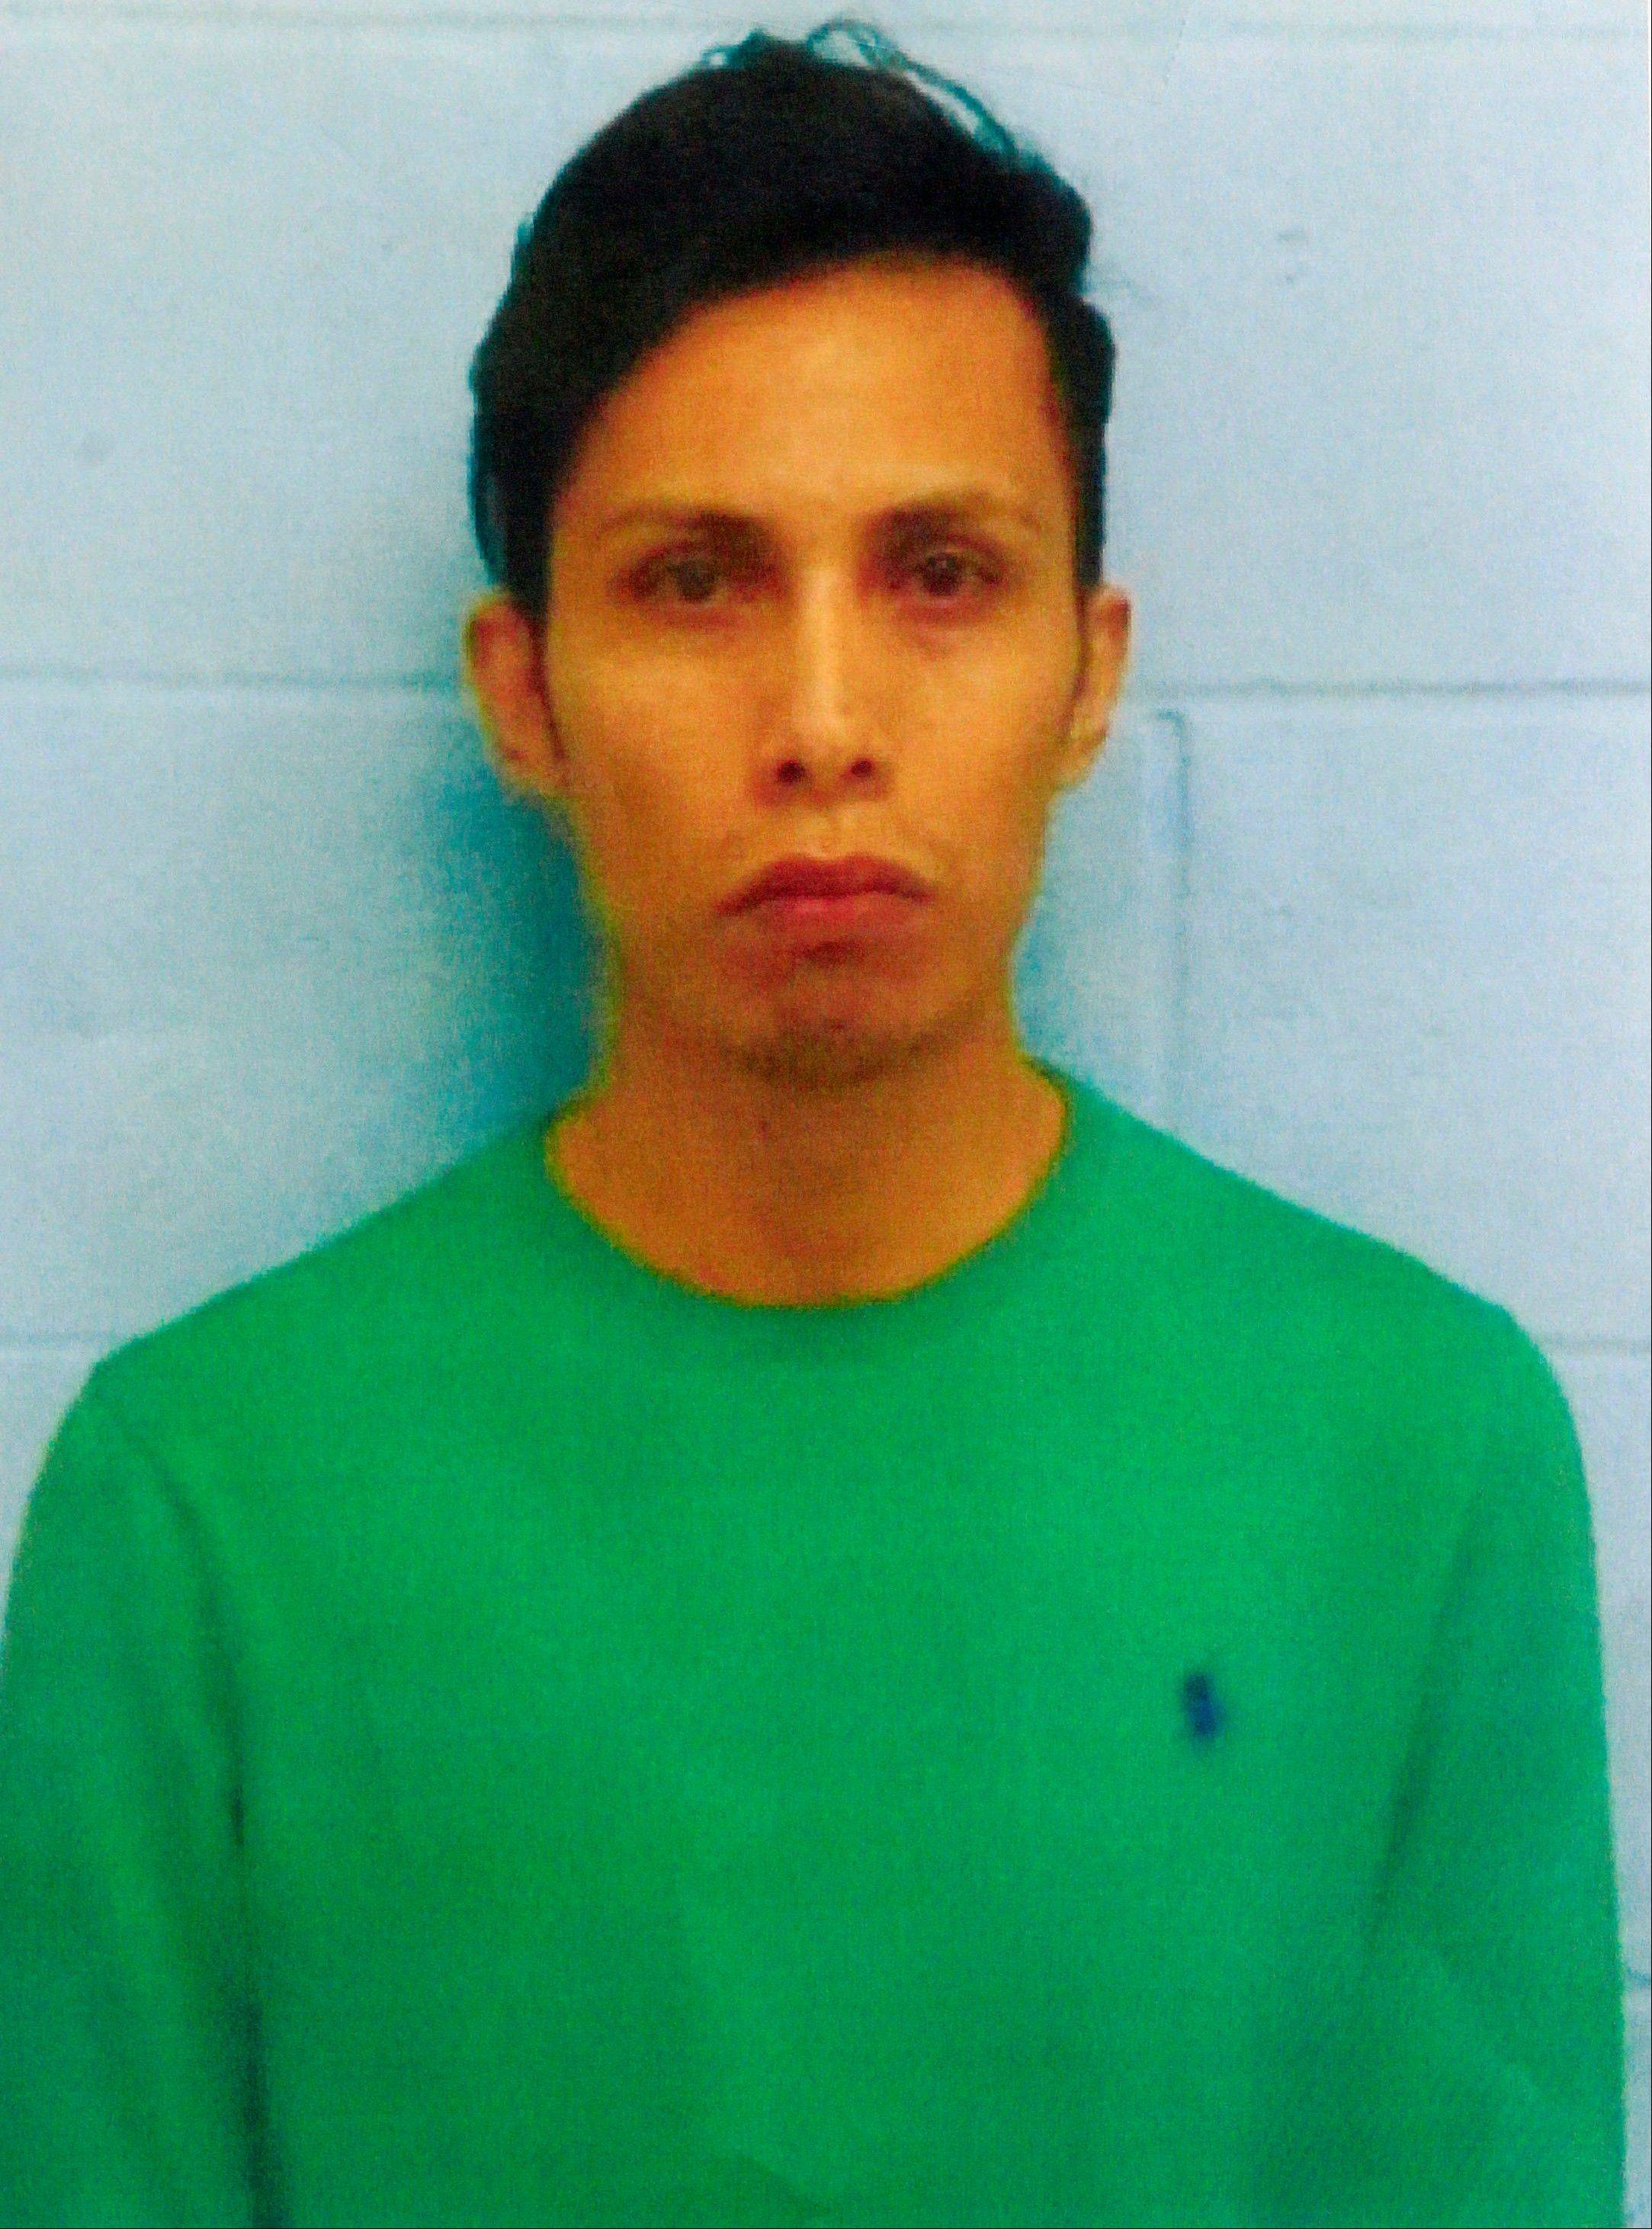 Daniel Guardiola Dominguez, 28, of Monterrey, Mexico, was arrested Sunday, Jan. 19, 2014, after arriving at the border with 96 fraudulent credit cards produced using data stolen during the Target security breach late last year.